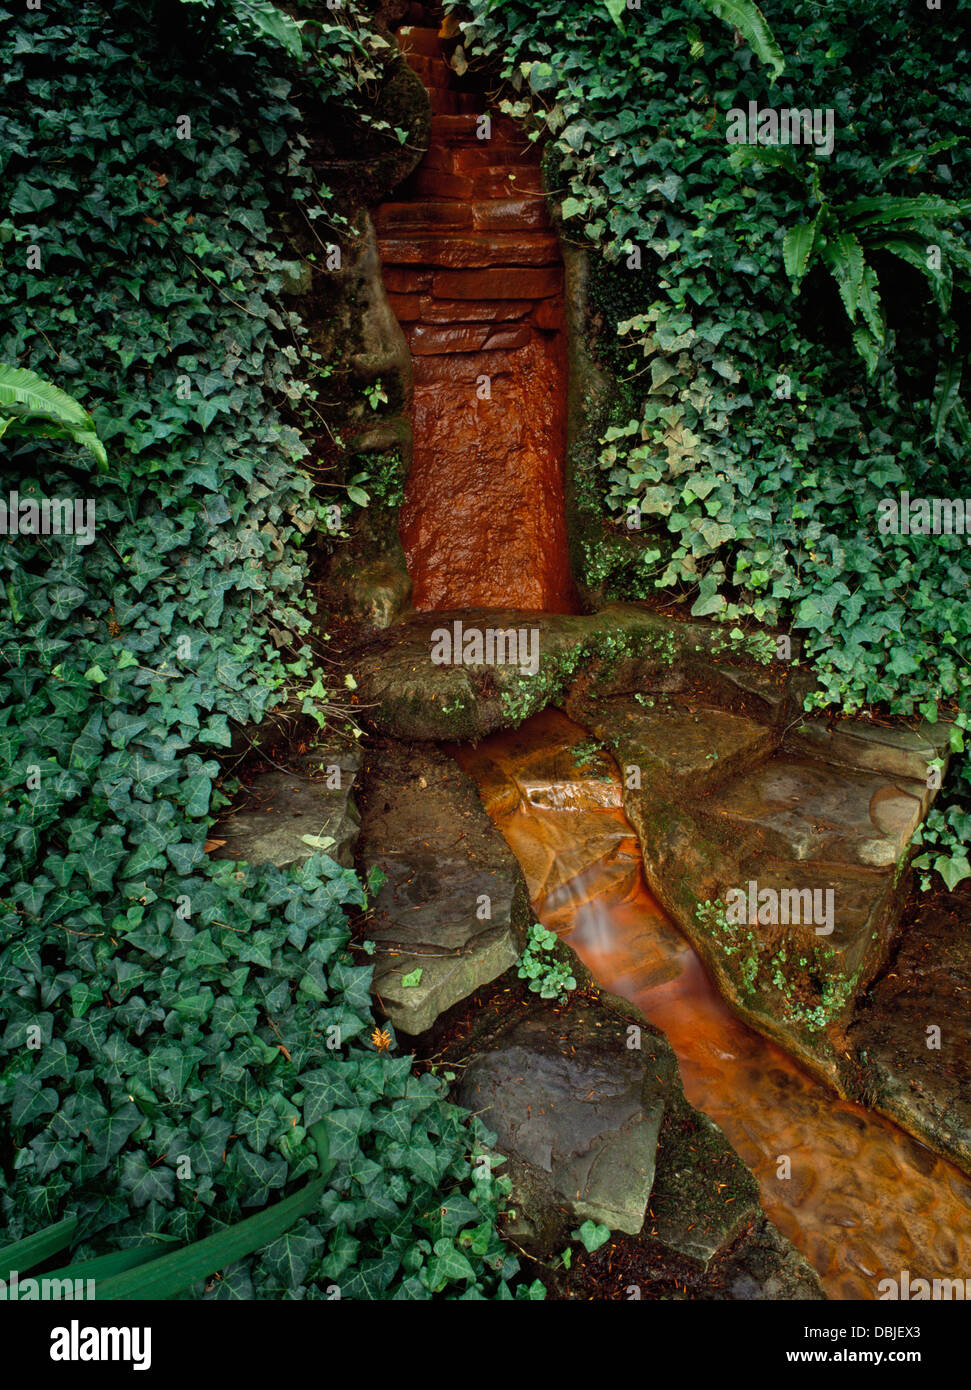 Chalice Well Gardens, Glastonbury, Somerset: a healing chalybeate spring associated with the Earth Goddess and legends - Stock Image